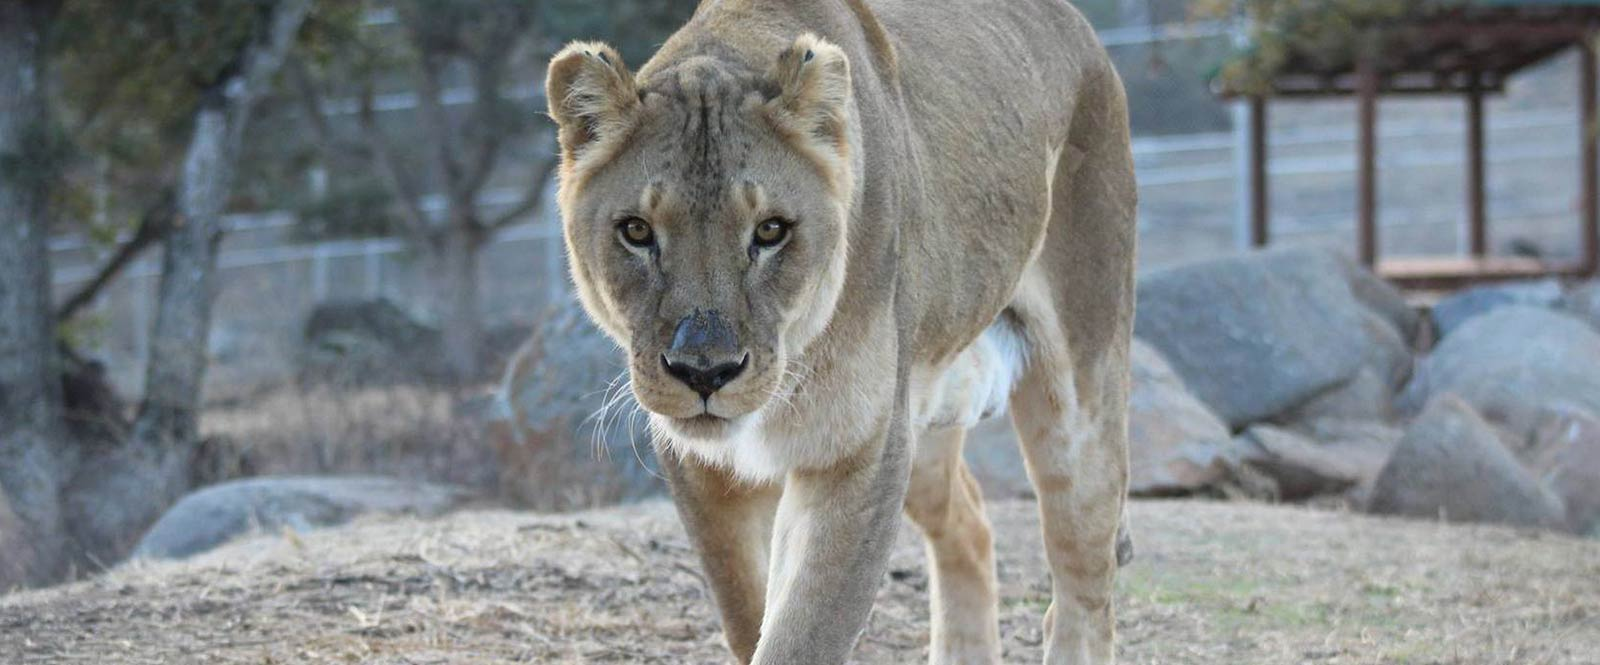 No Place Like Home at Lions Tigers & Bears Sanctuary, Alpine